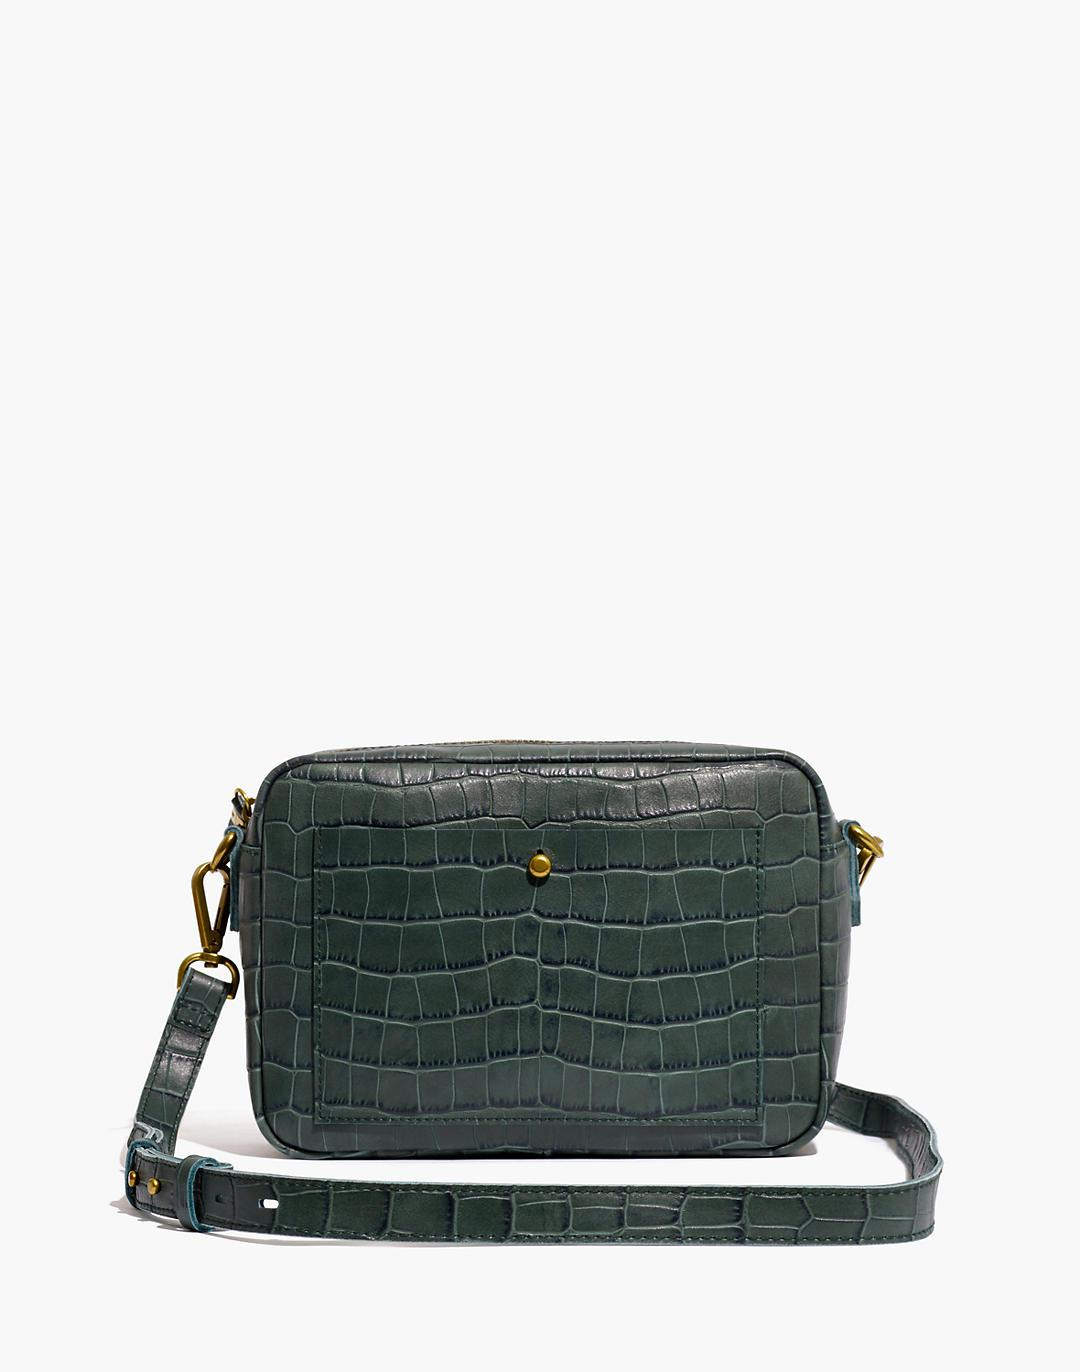 The Large Transport Camera Bag: Croc Embossed Leather Edition